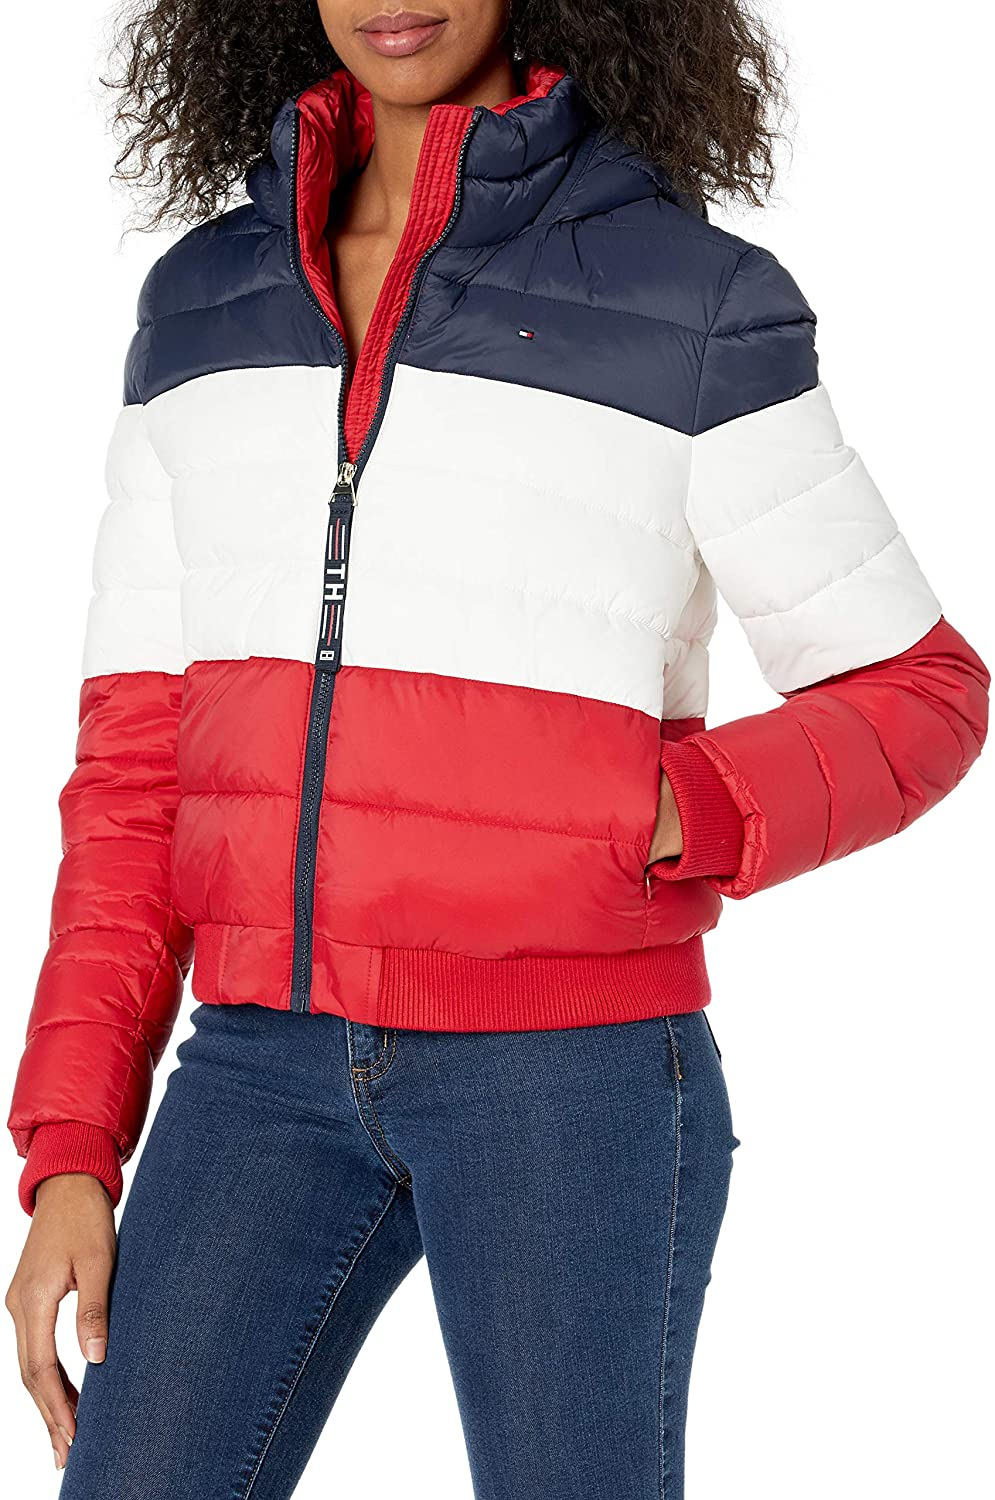 Tommy NEW ARRIVAL Hilfiger Women Packable 全国一律送料無料 Jacket